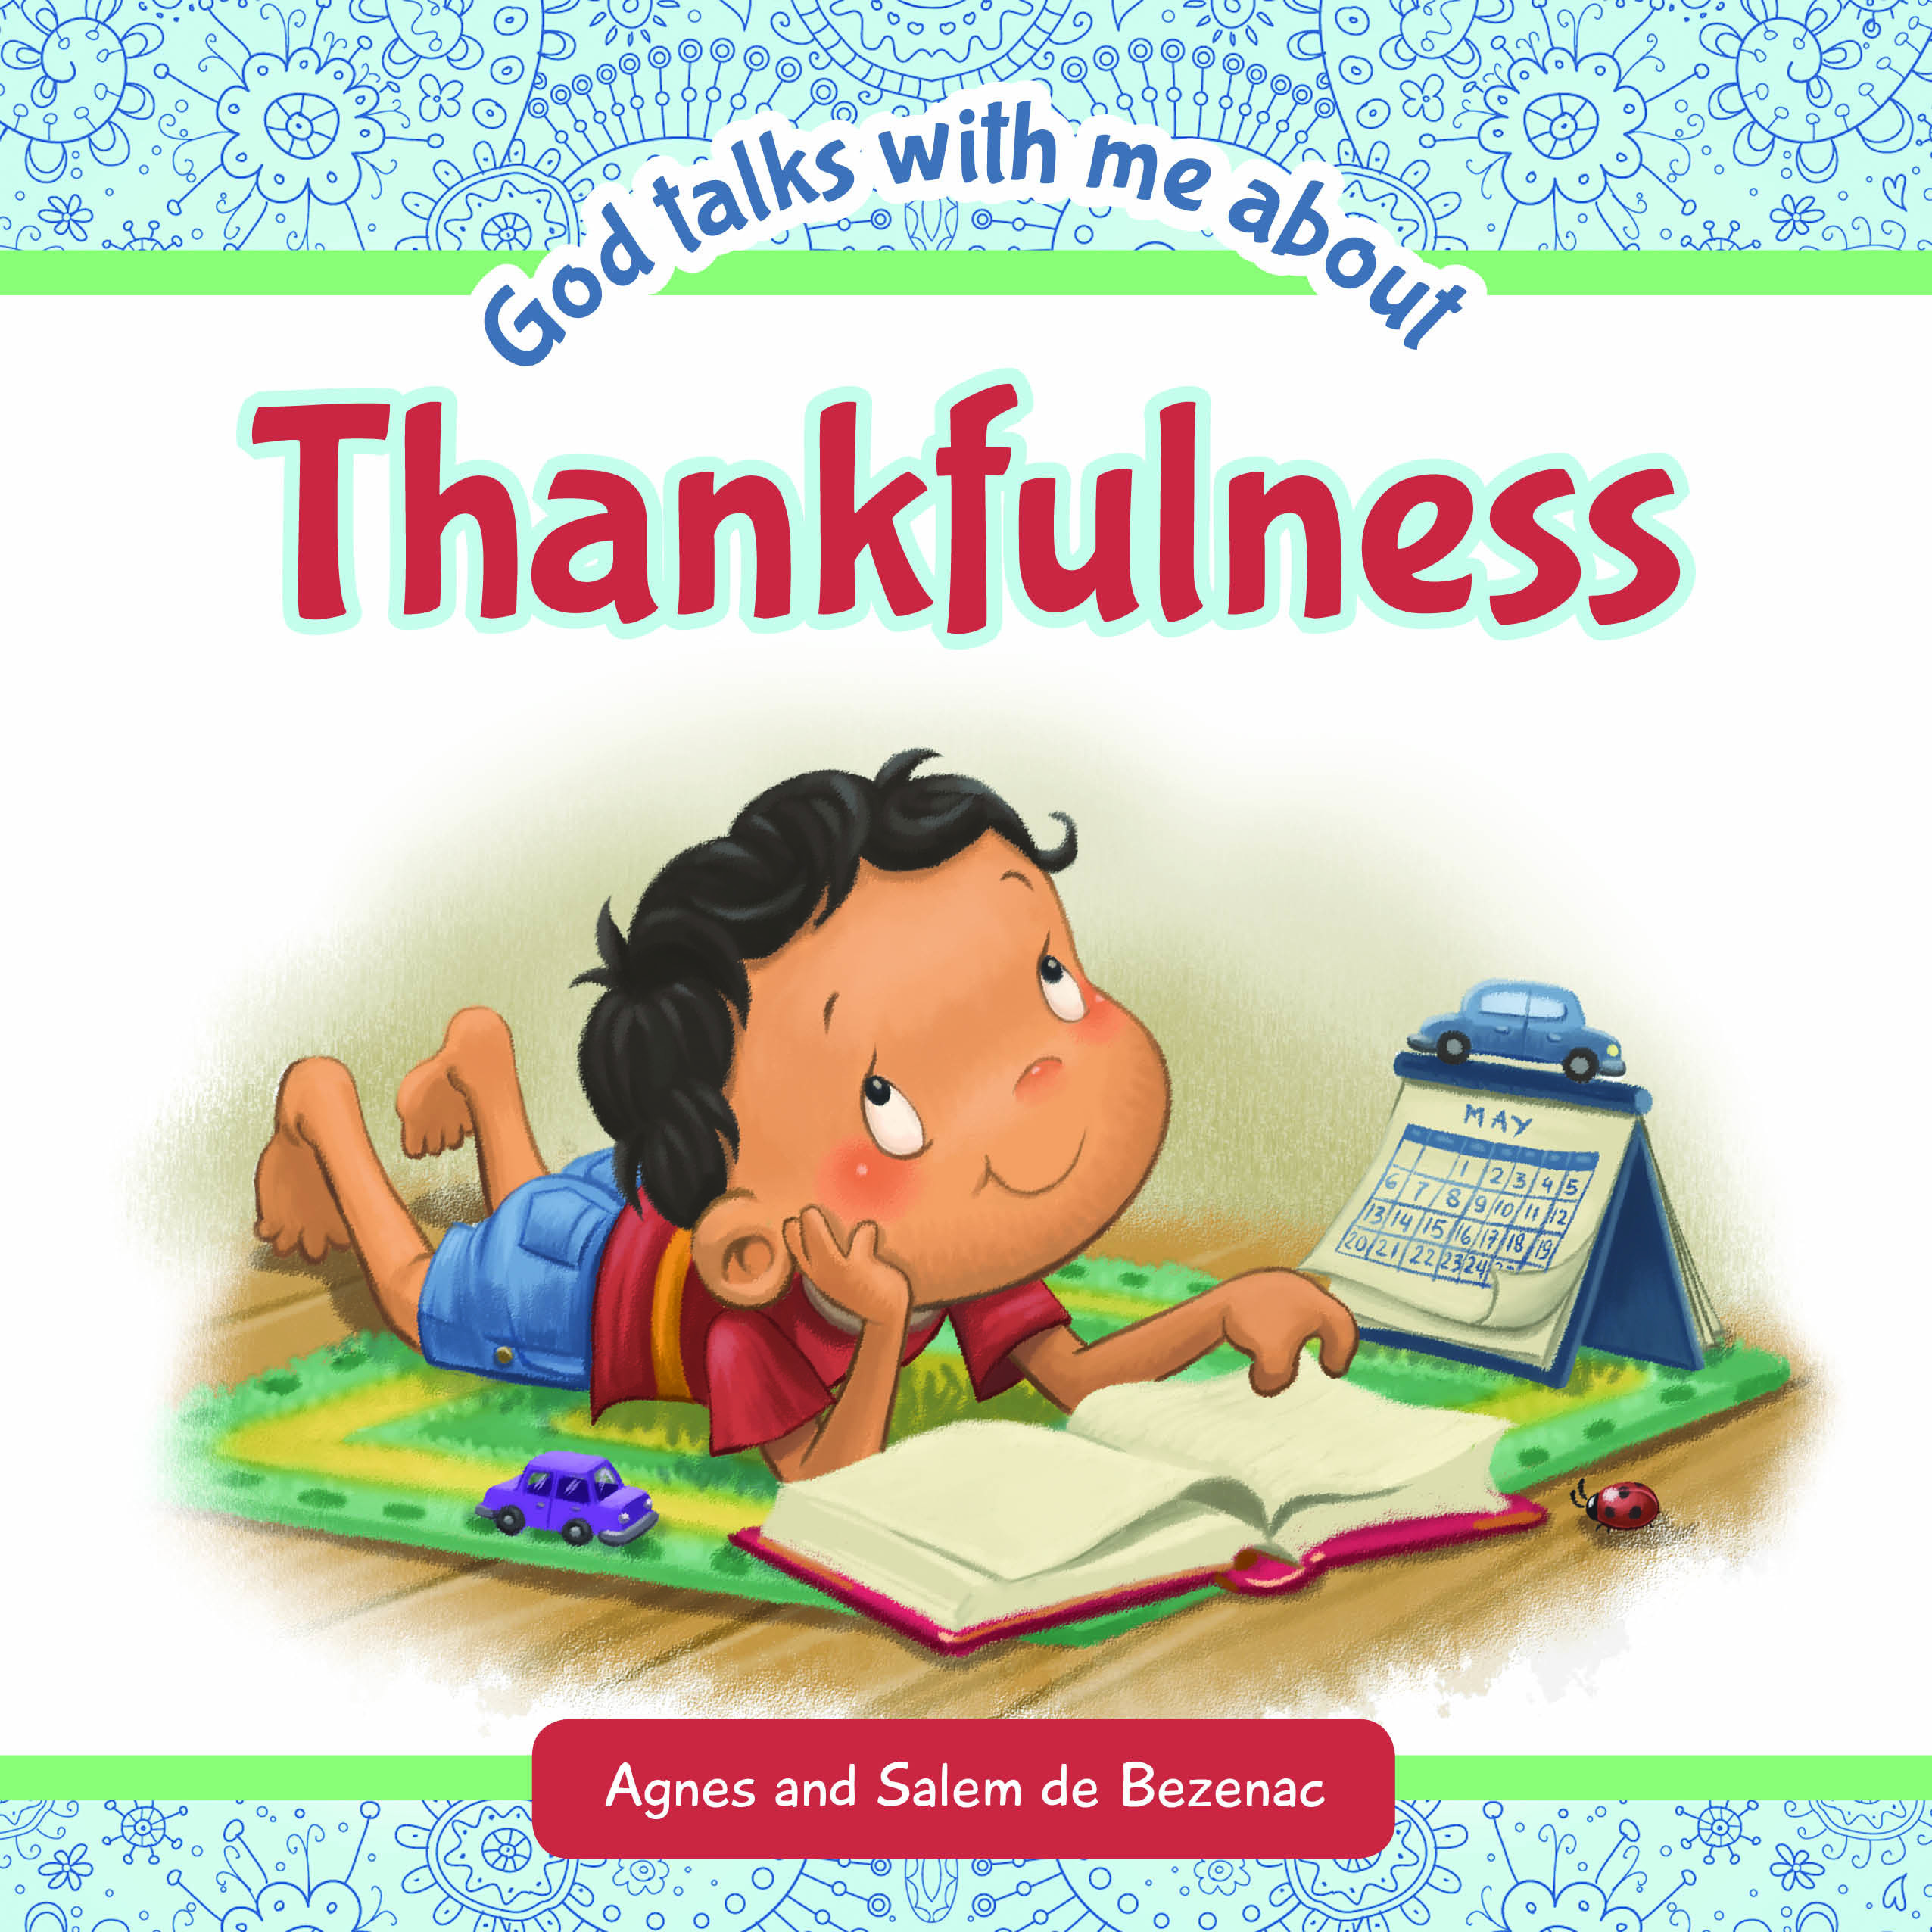 en_god_talks_with_me_about_thankfulness-herald